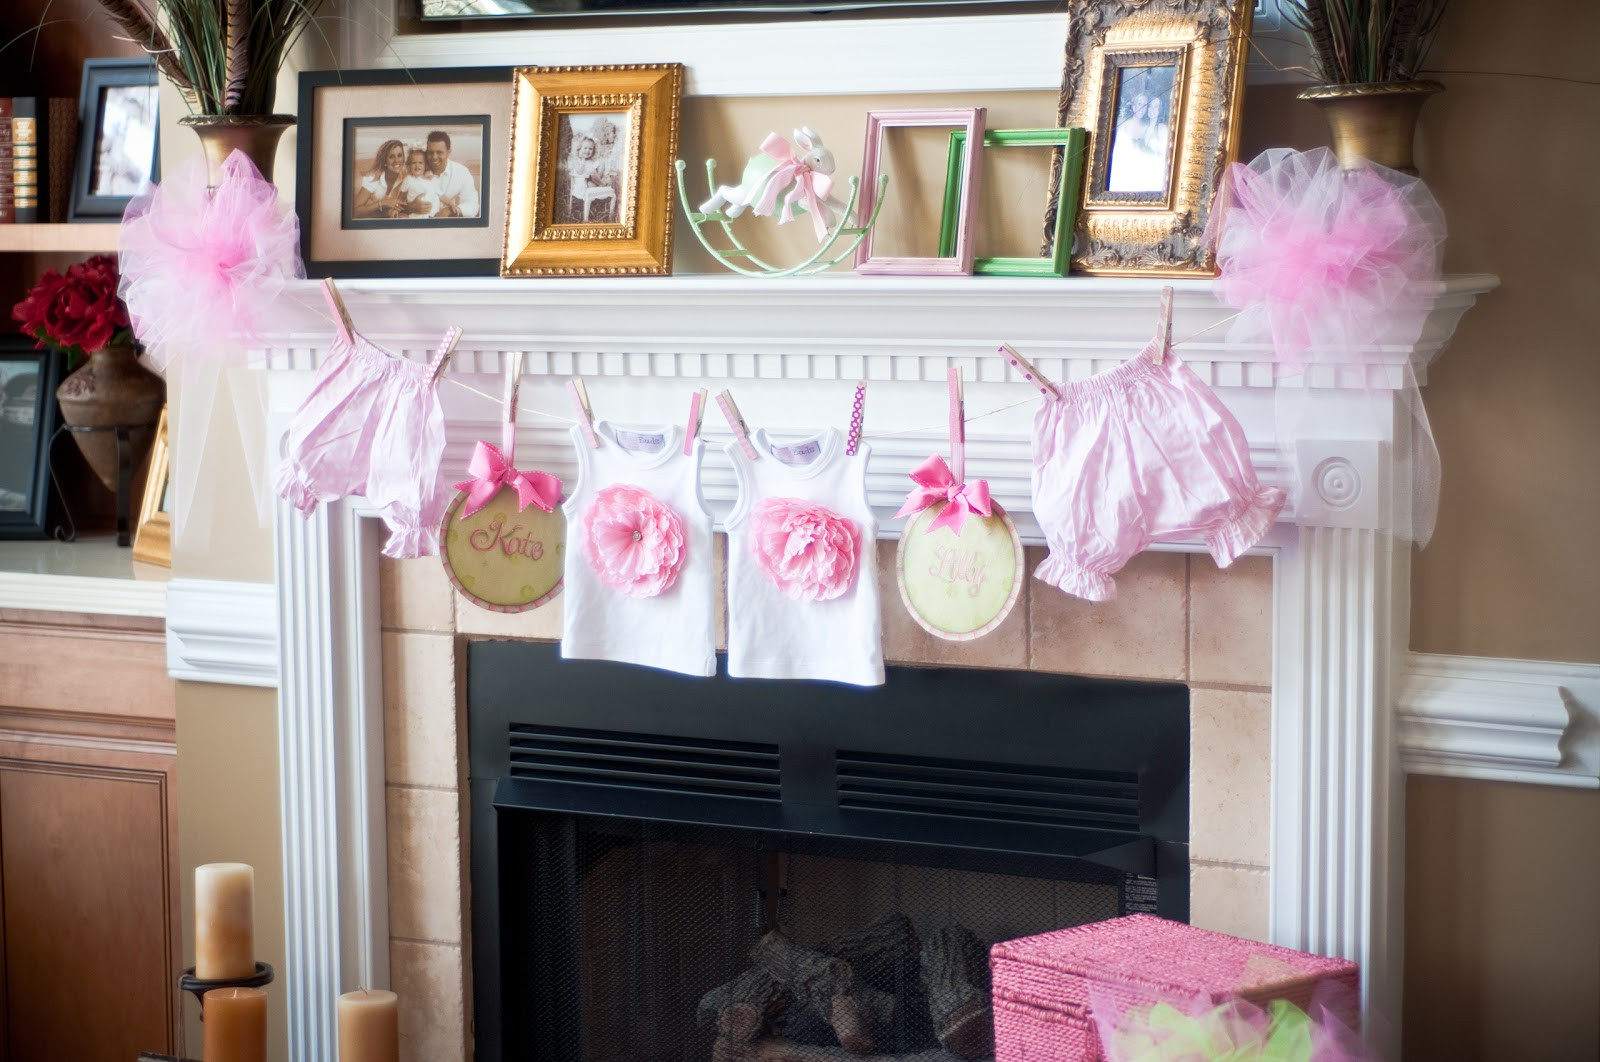 Baby Shower Decoration Ideas At Home  paws & re thread baby shower decorating ideas clothes